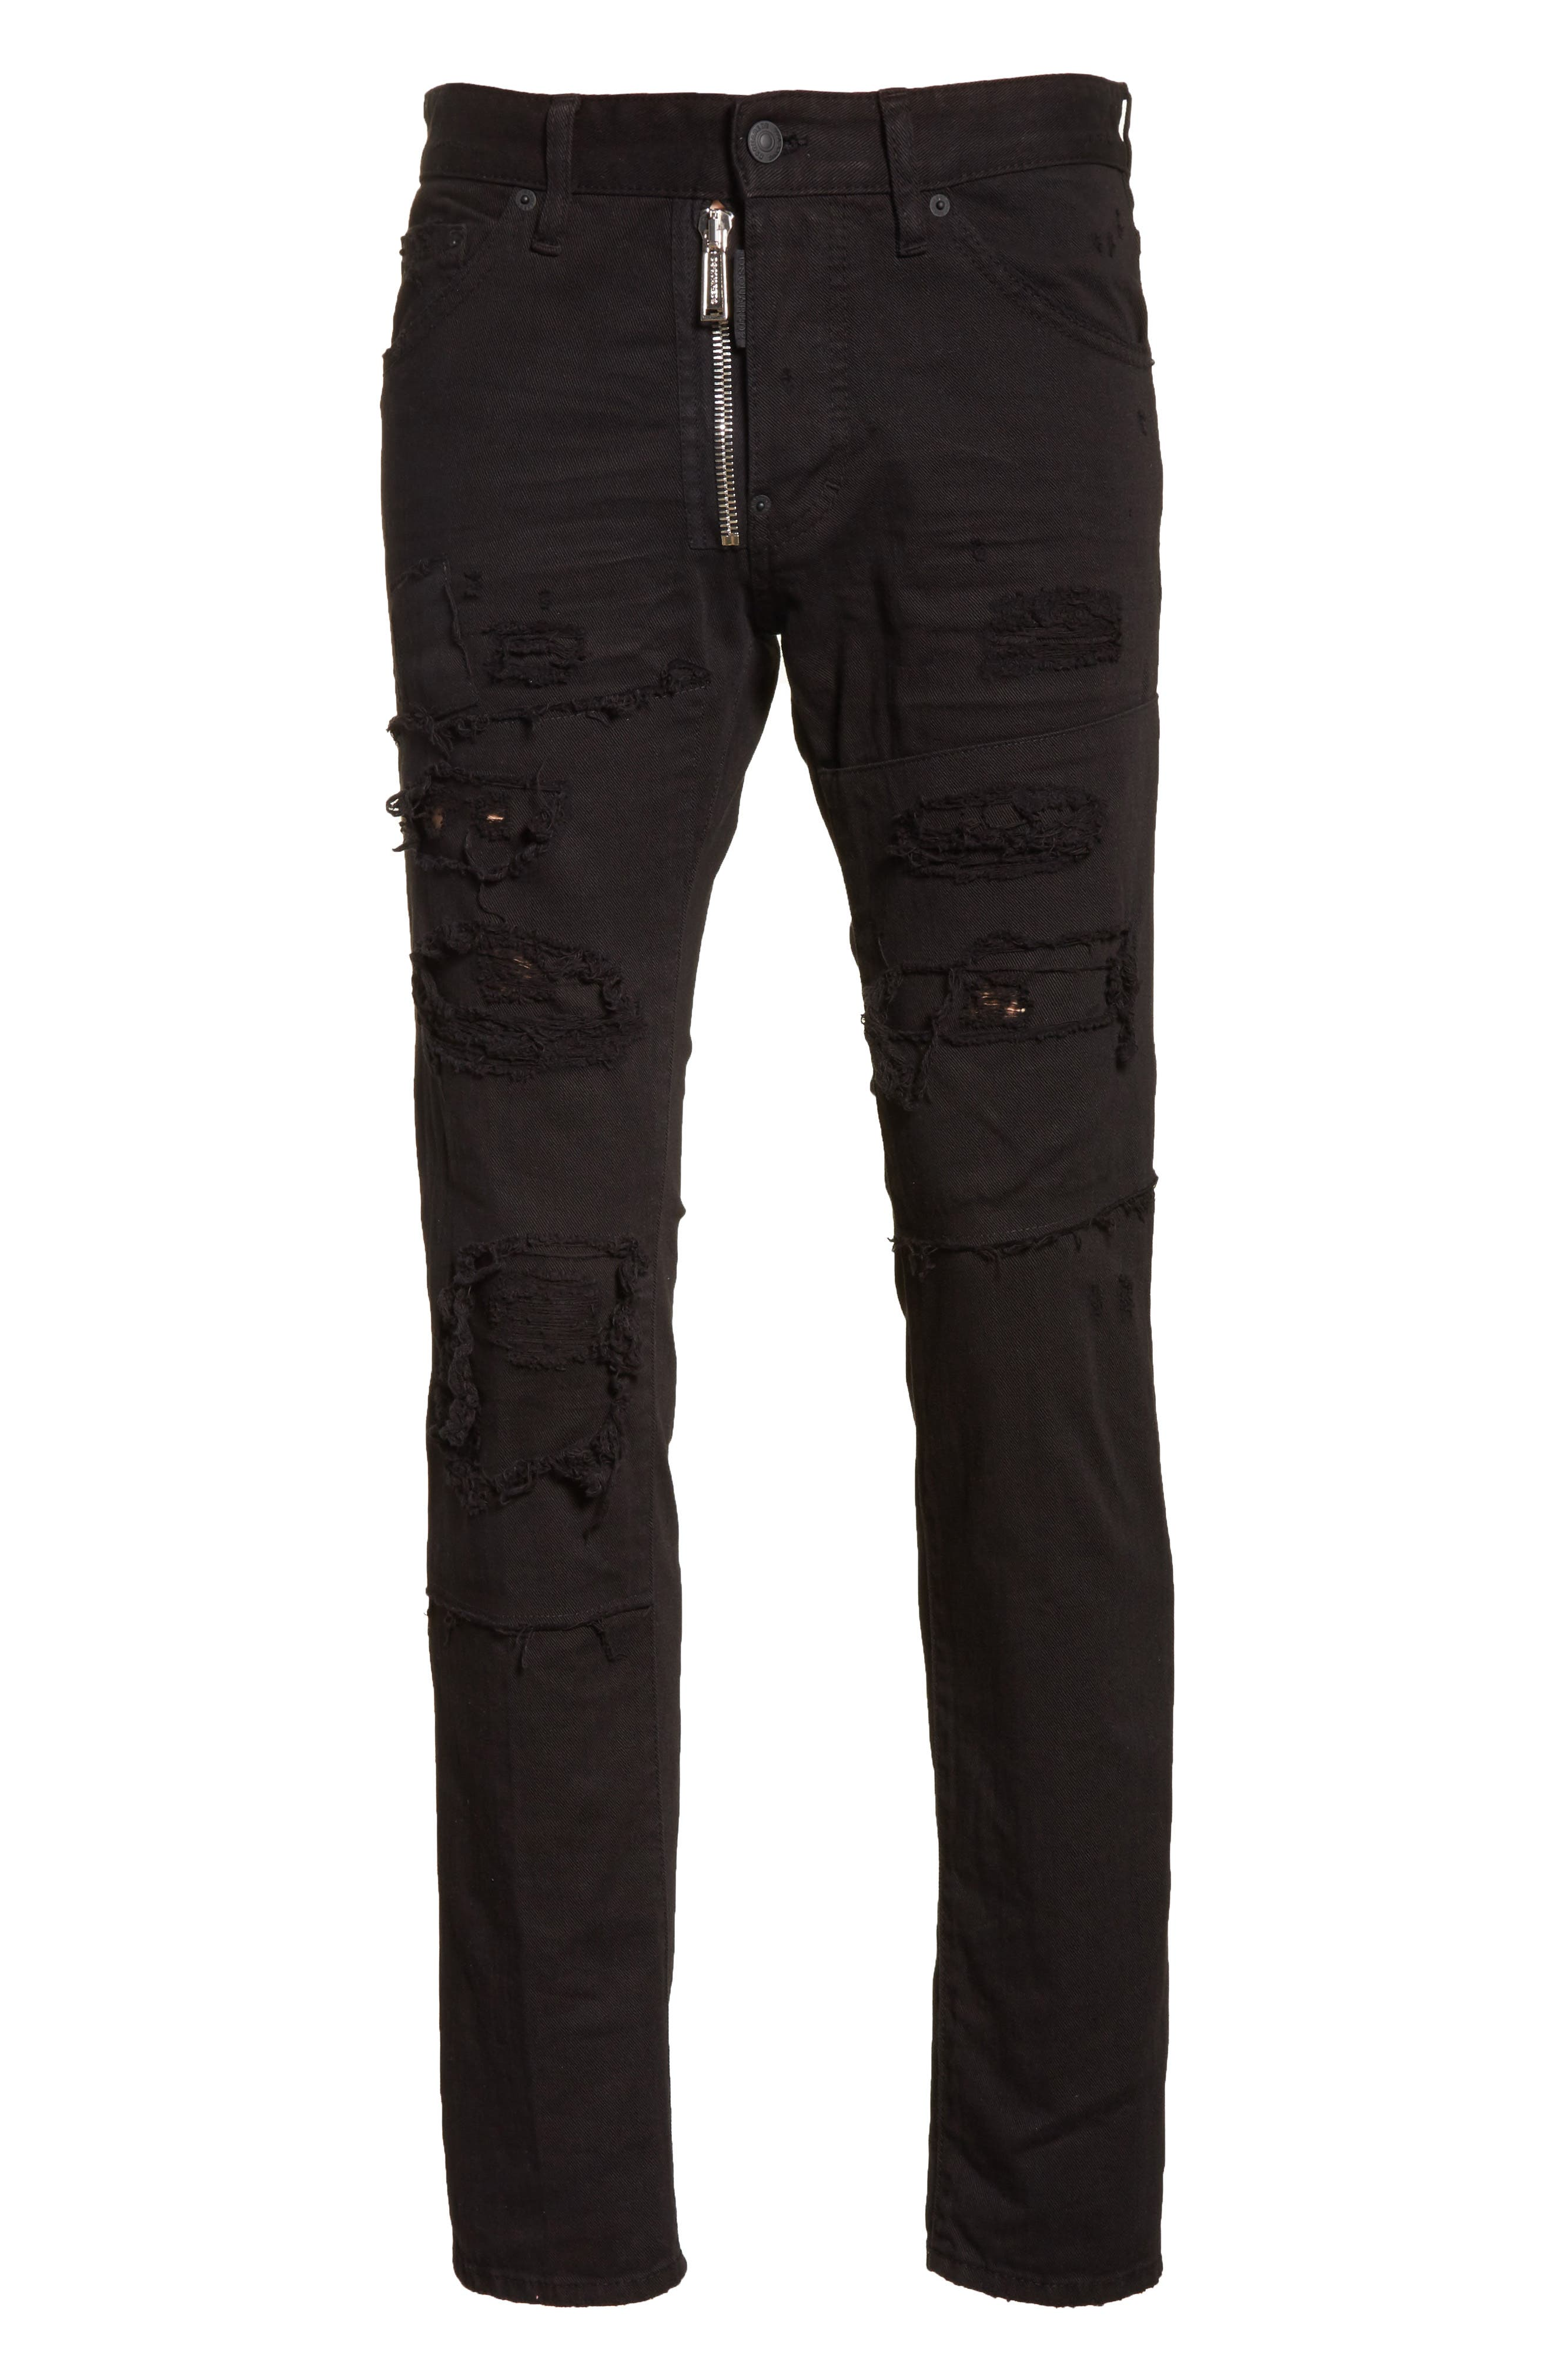 Ripped Washed Cool Guy Jeans,                             Alternate thumbnail 6, color,                             Black